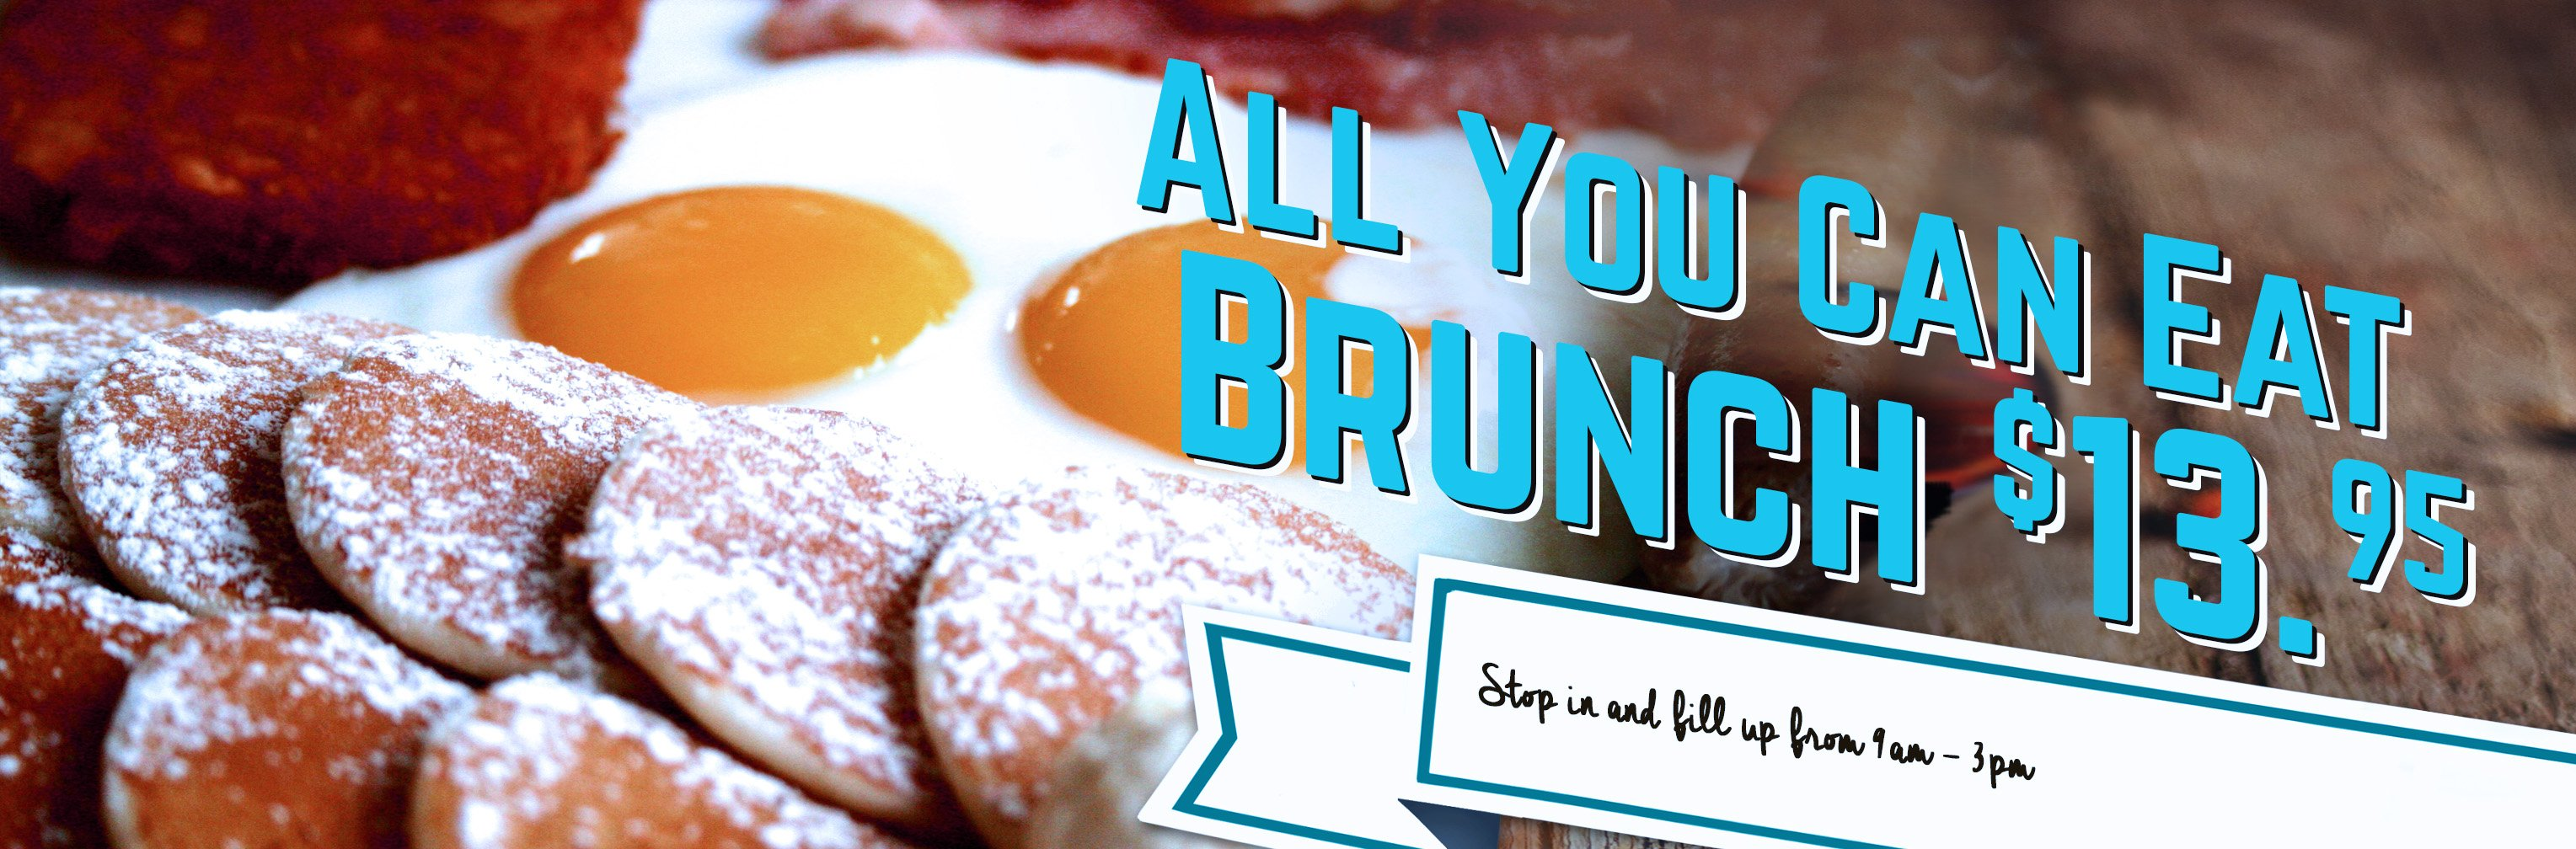 All you can eat brunch at the Fusion Grill Bar & Restaurant in Lyndonville, VT